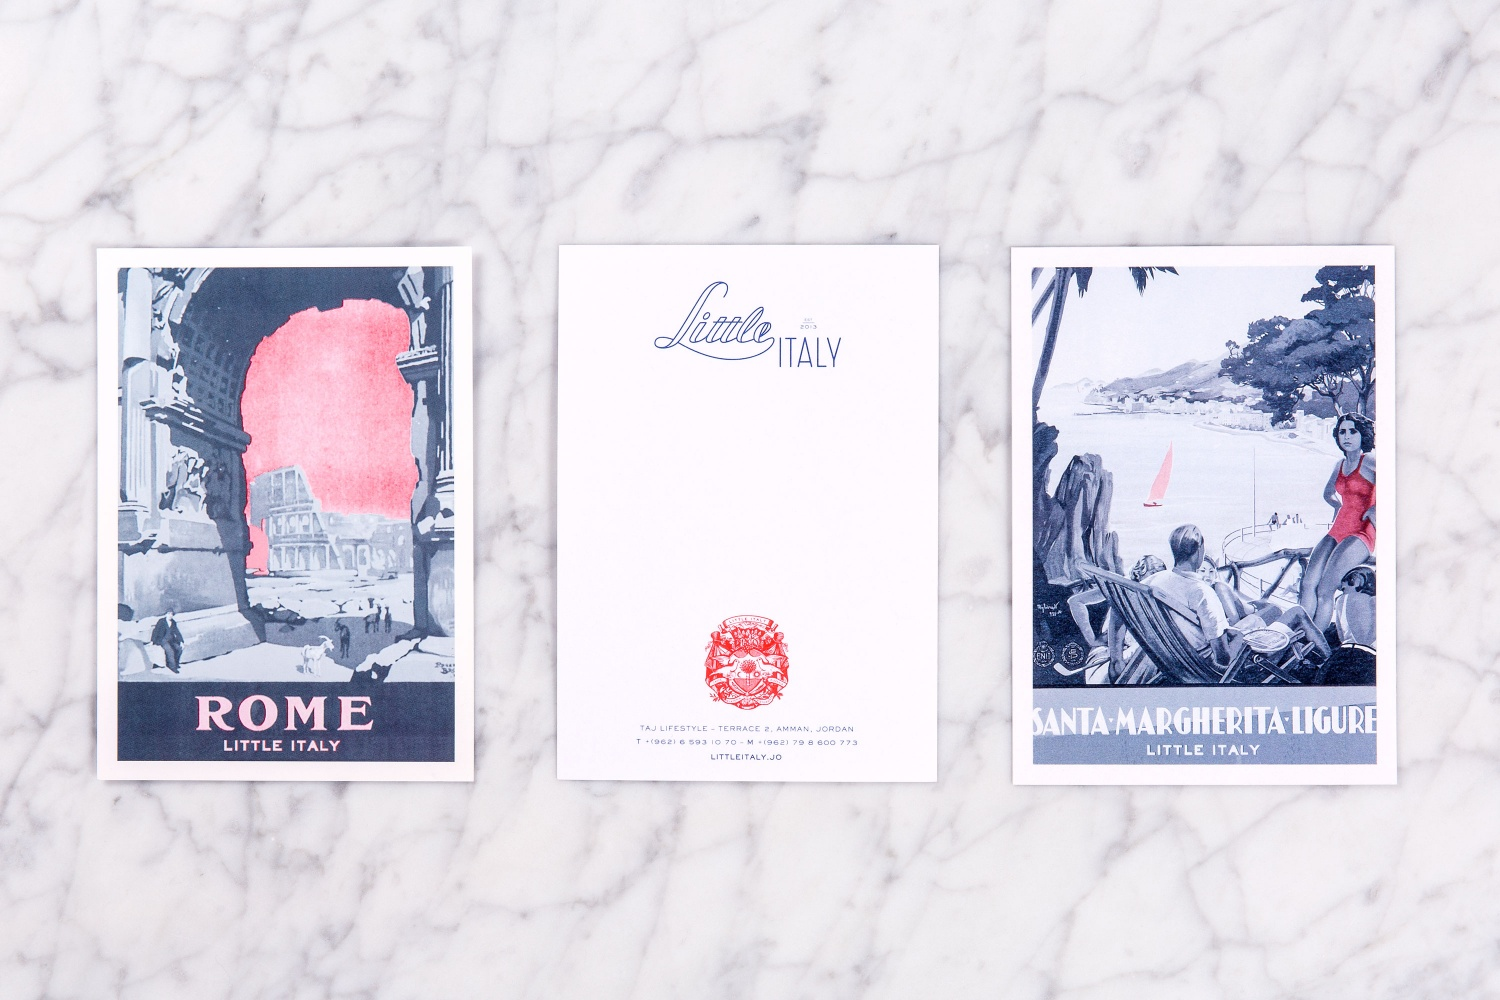 Brand identity and print by British studio Here Design for Amman-based restaurant Little Italy